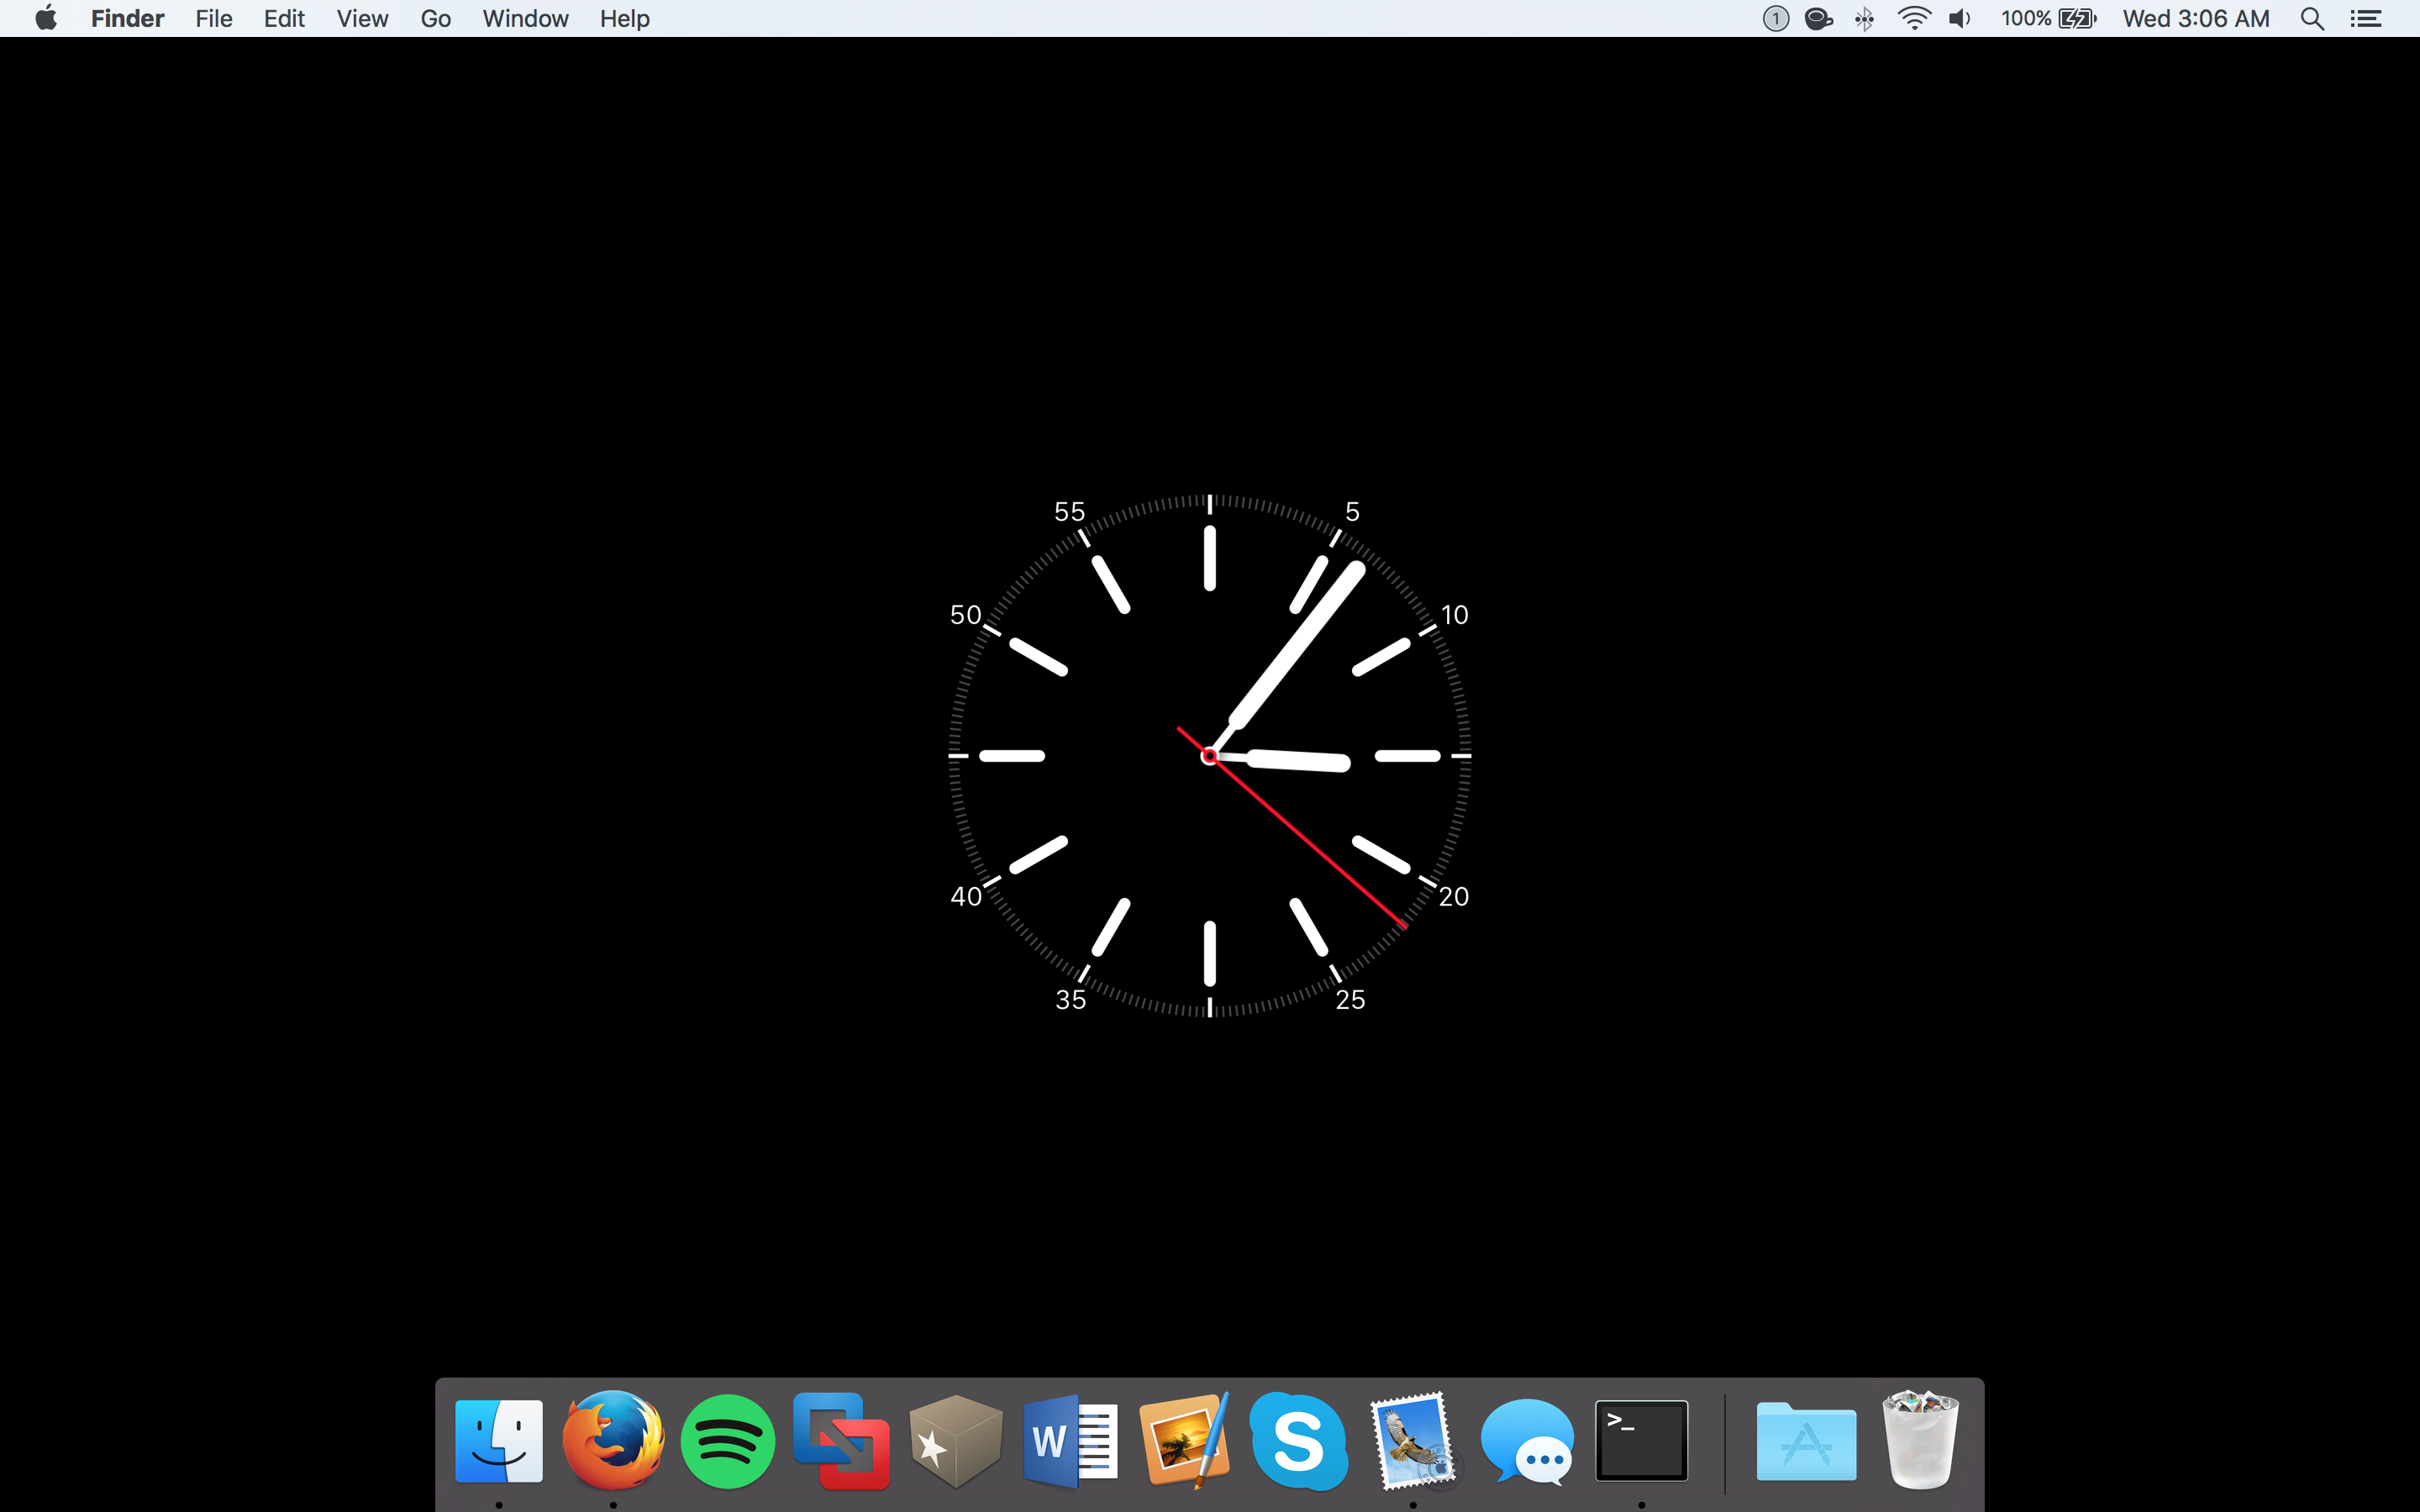 ow to set screensaver as wallpaper on mac